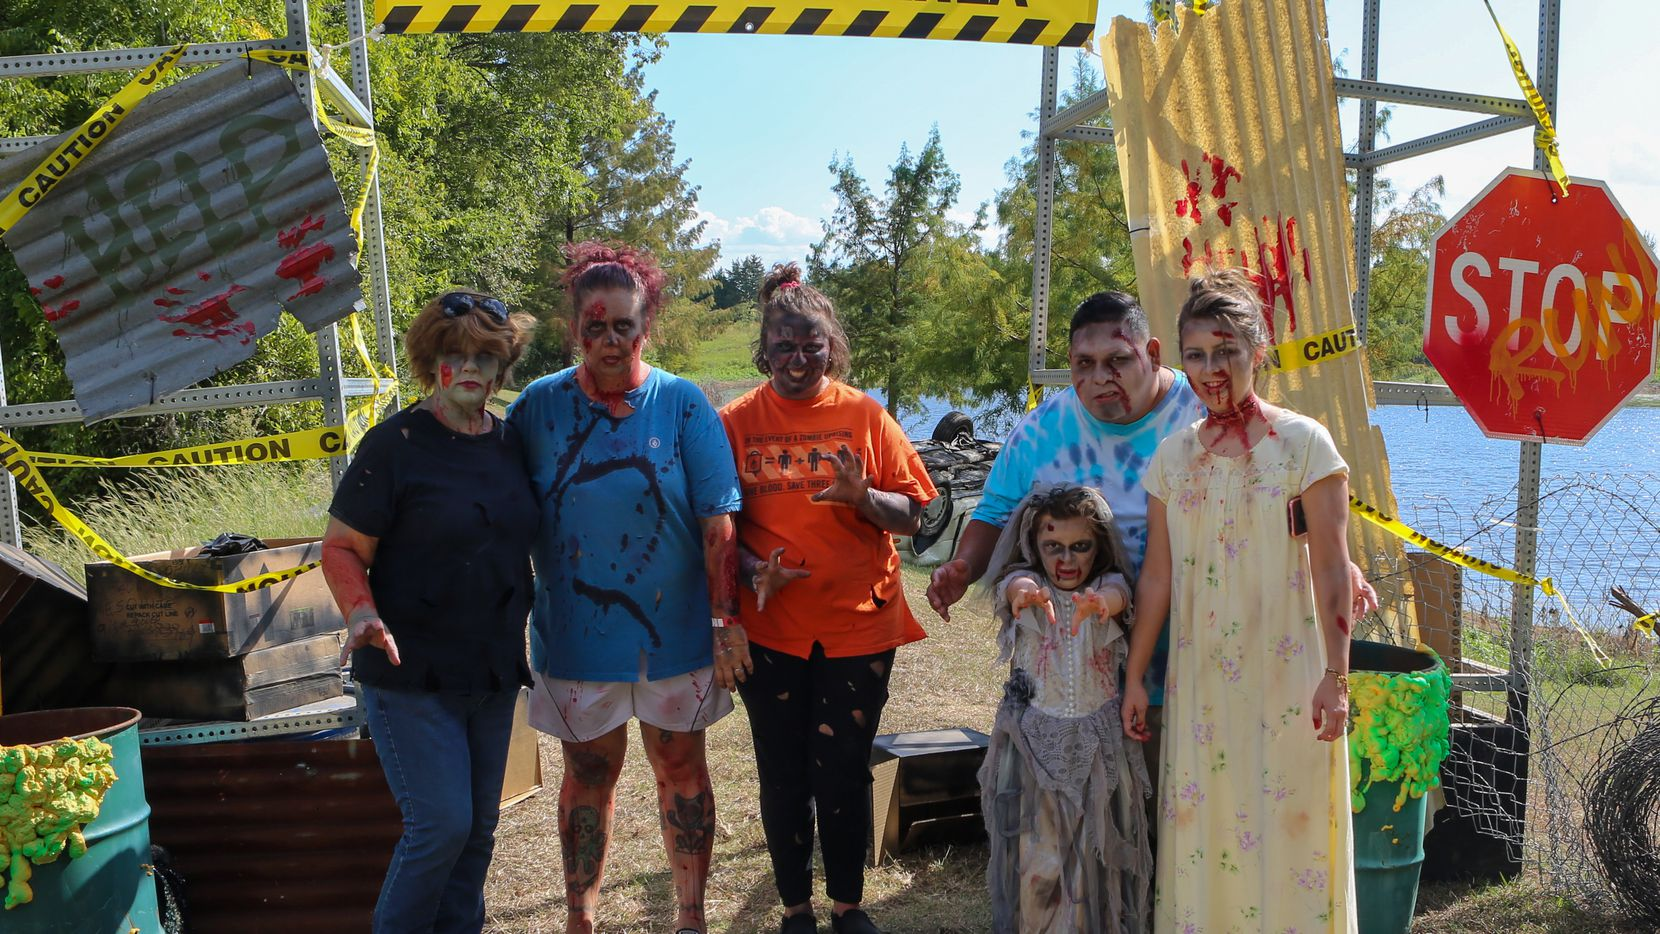 The family-friendly Guys & Gory Zombie Run in Mesquite in 2019 provided safe scares for attendees looking for a unique event to enjoy the outdoors.